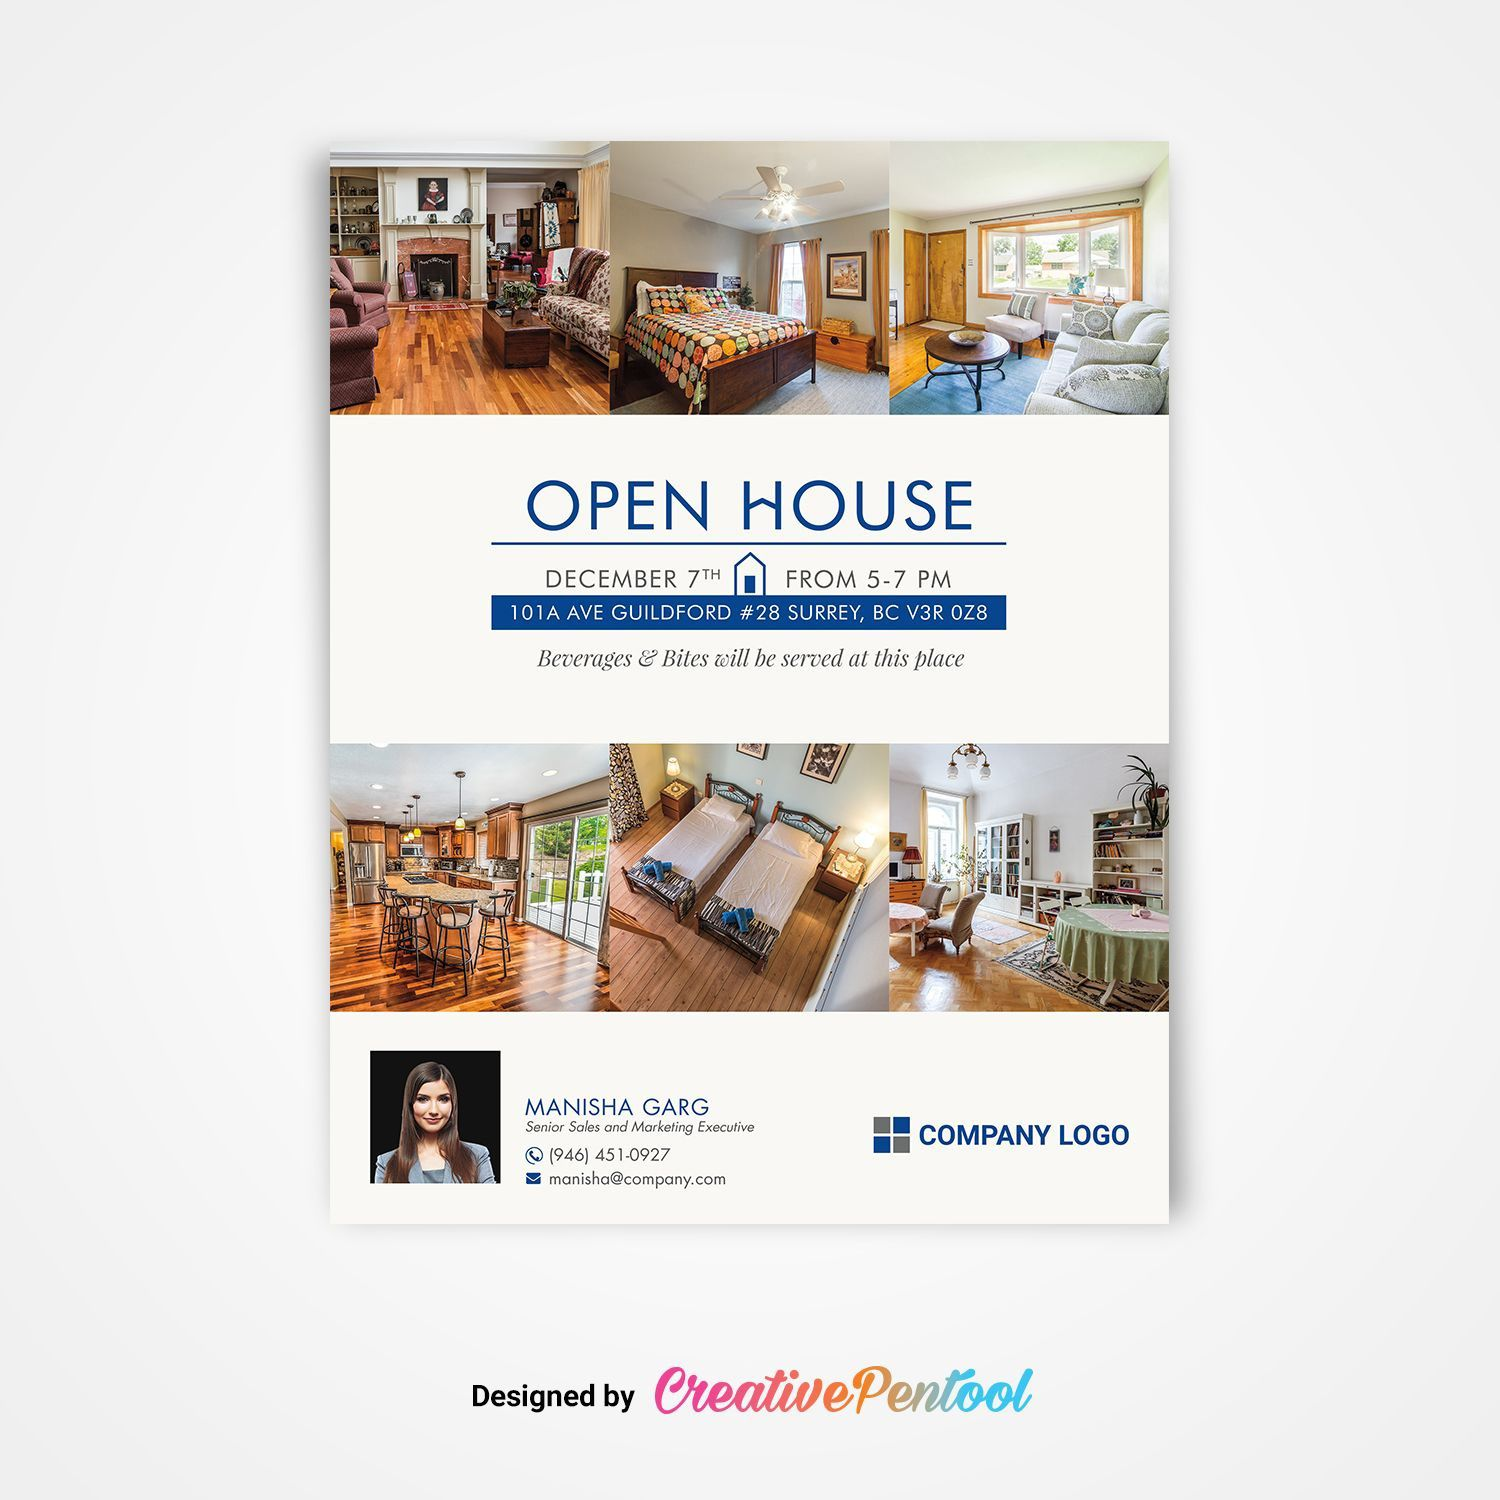 002 Dreaded Open House Flyer Template Example  Templates Free School MicrosoftFull